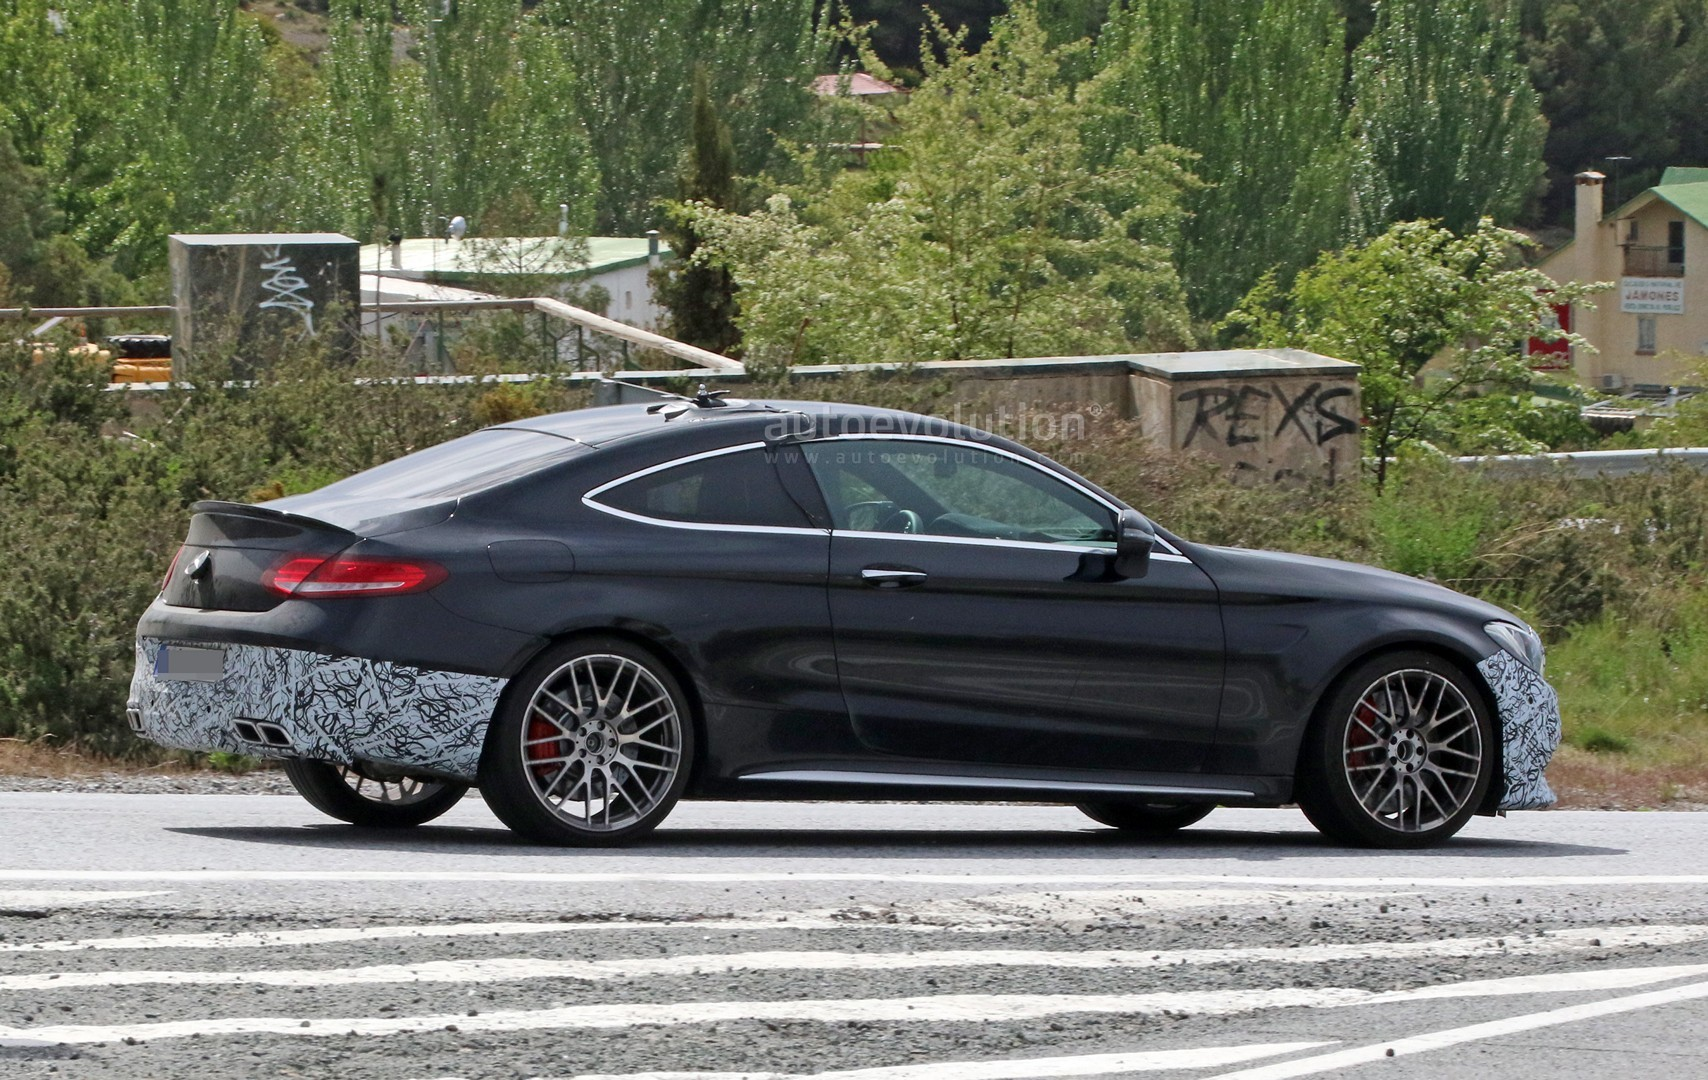 2018 mercedes amg c63 coupe facelift spied during tests in southern europe autoevolution. Black Bedroom Furniture Sets. Home Design Ideas